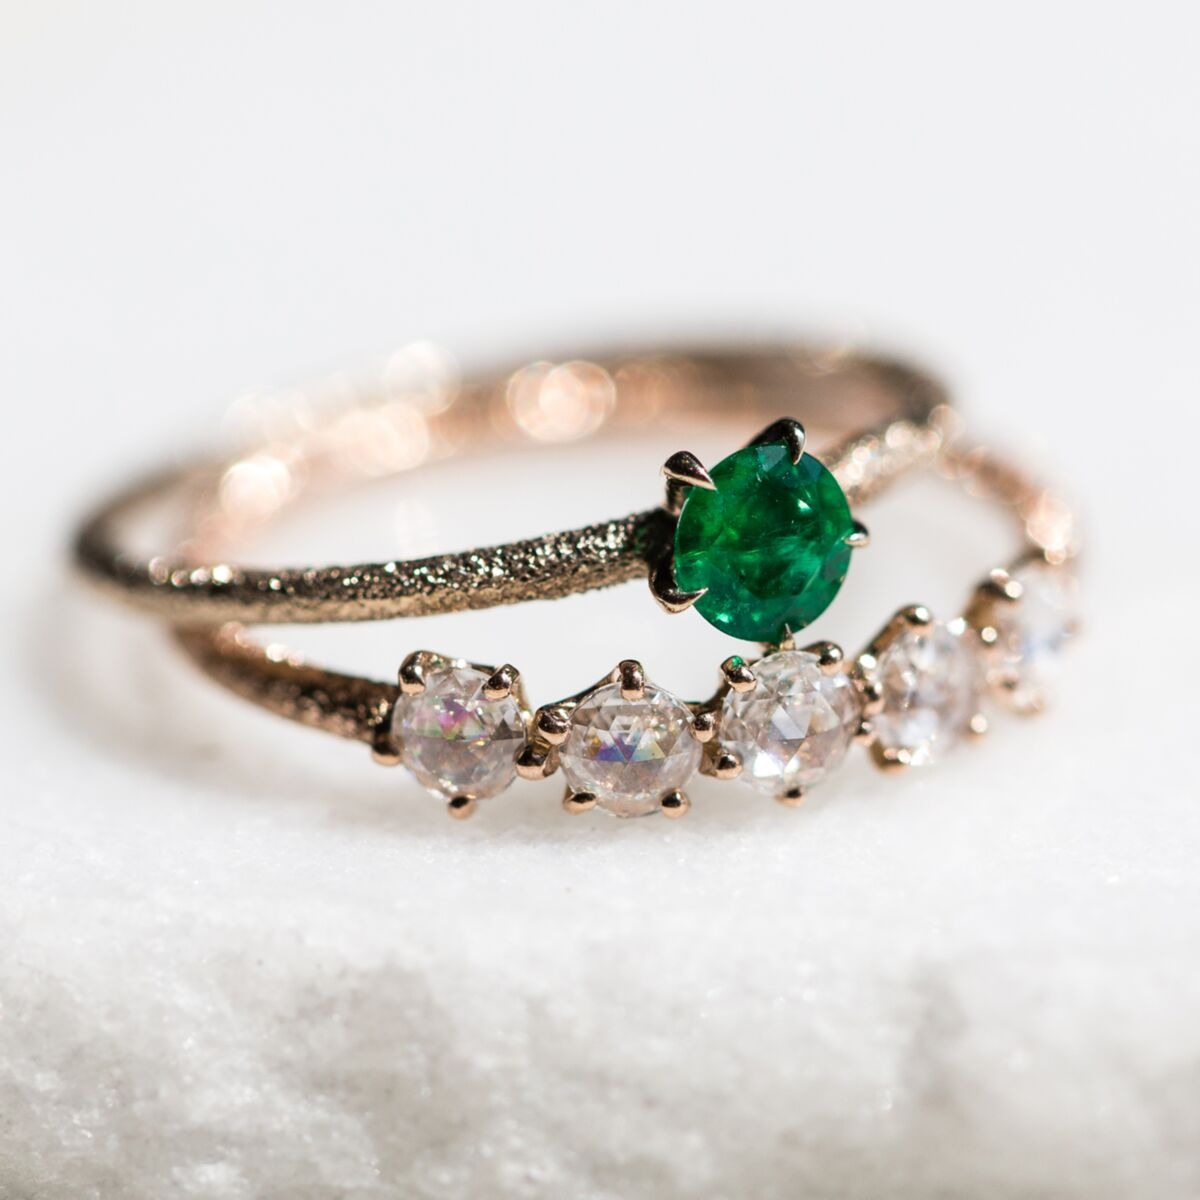 solitaire emerald engagement ring with textured 18K gold band